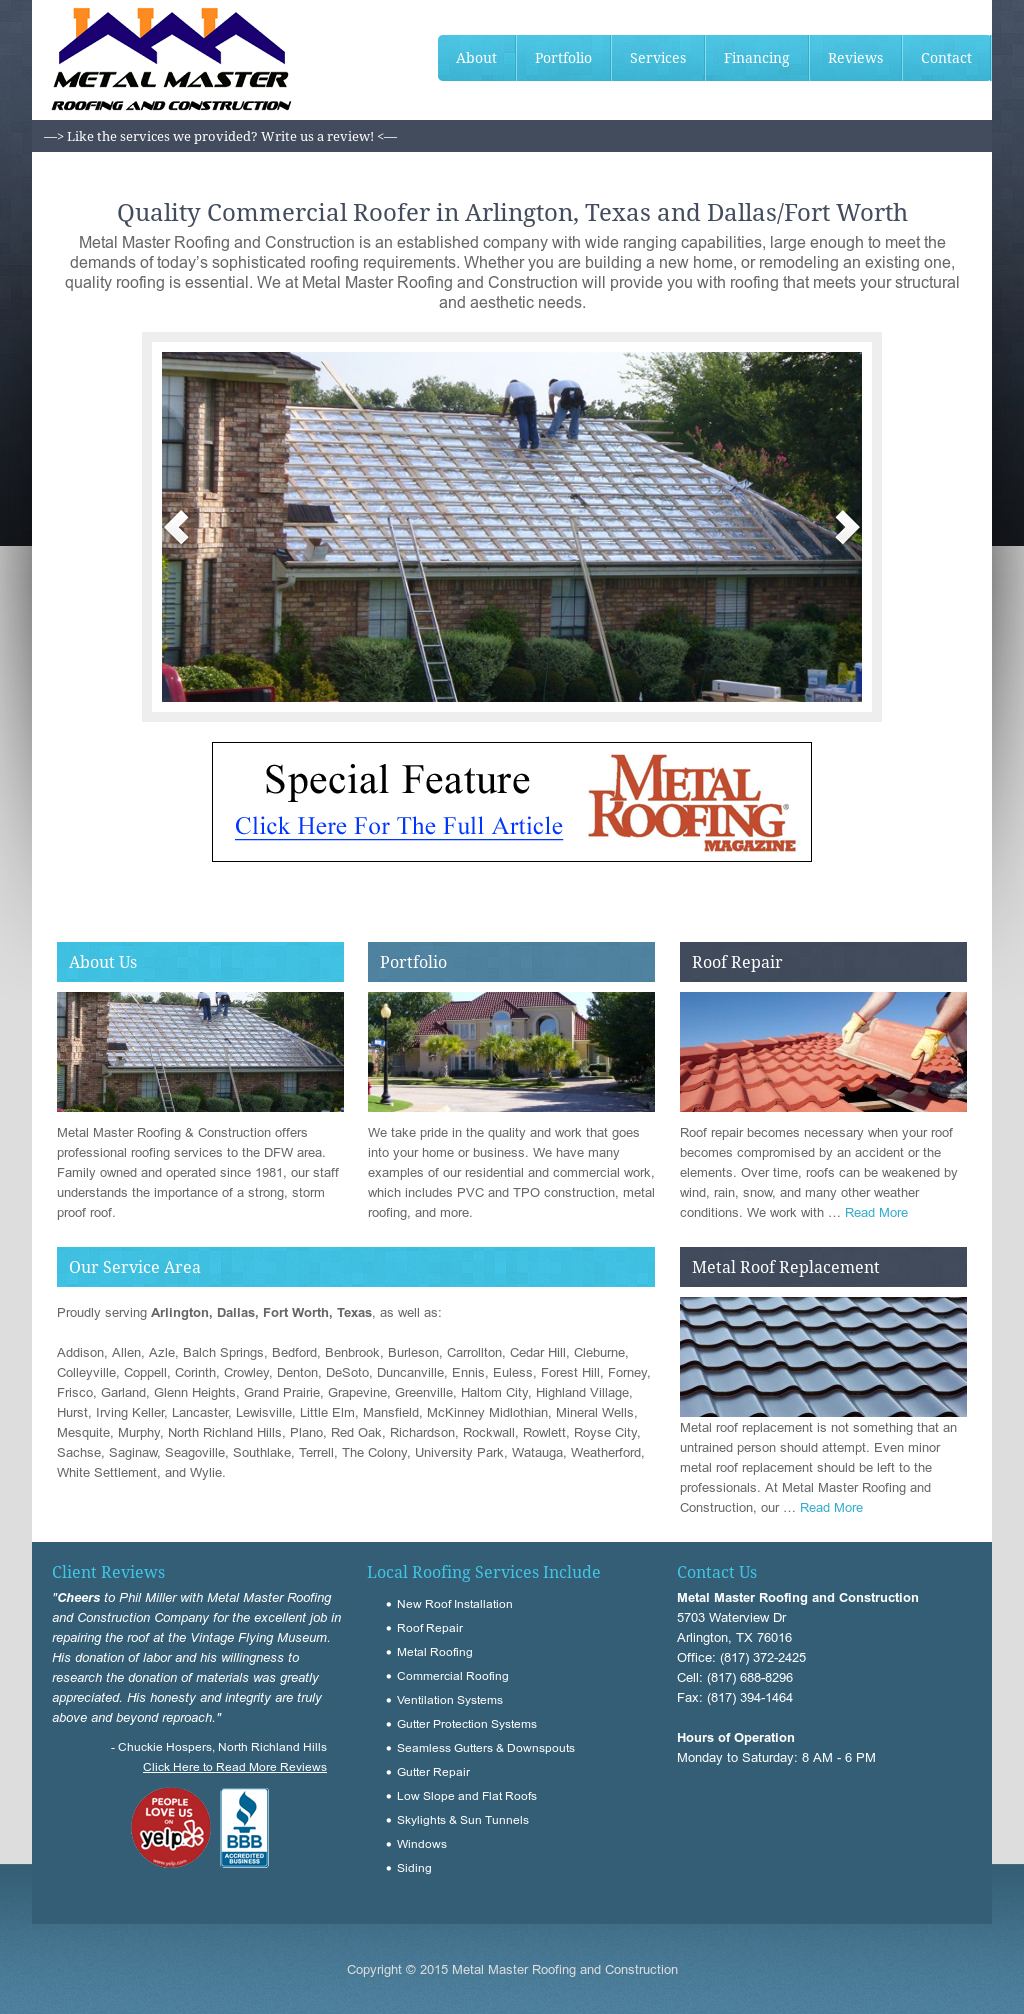 Metal Master Roofing And Construction Competitors, Revenue and